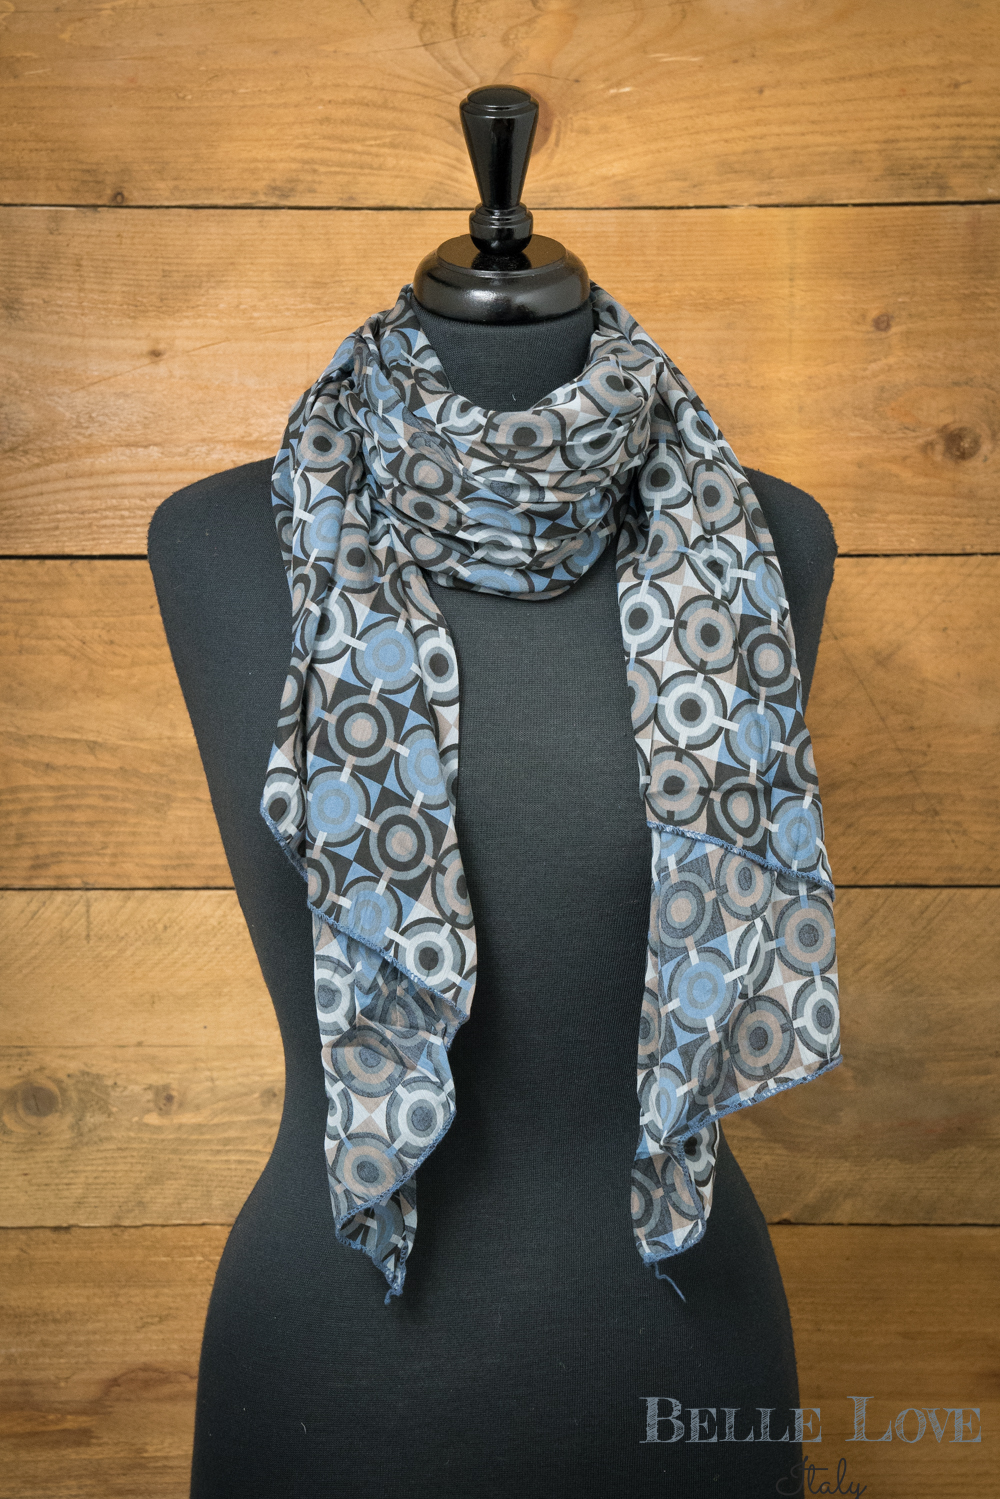 Belle Love Italy Retro Circle Silk Mix Scarf